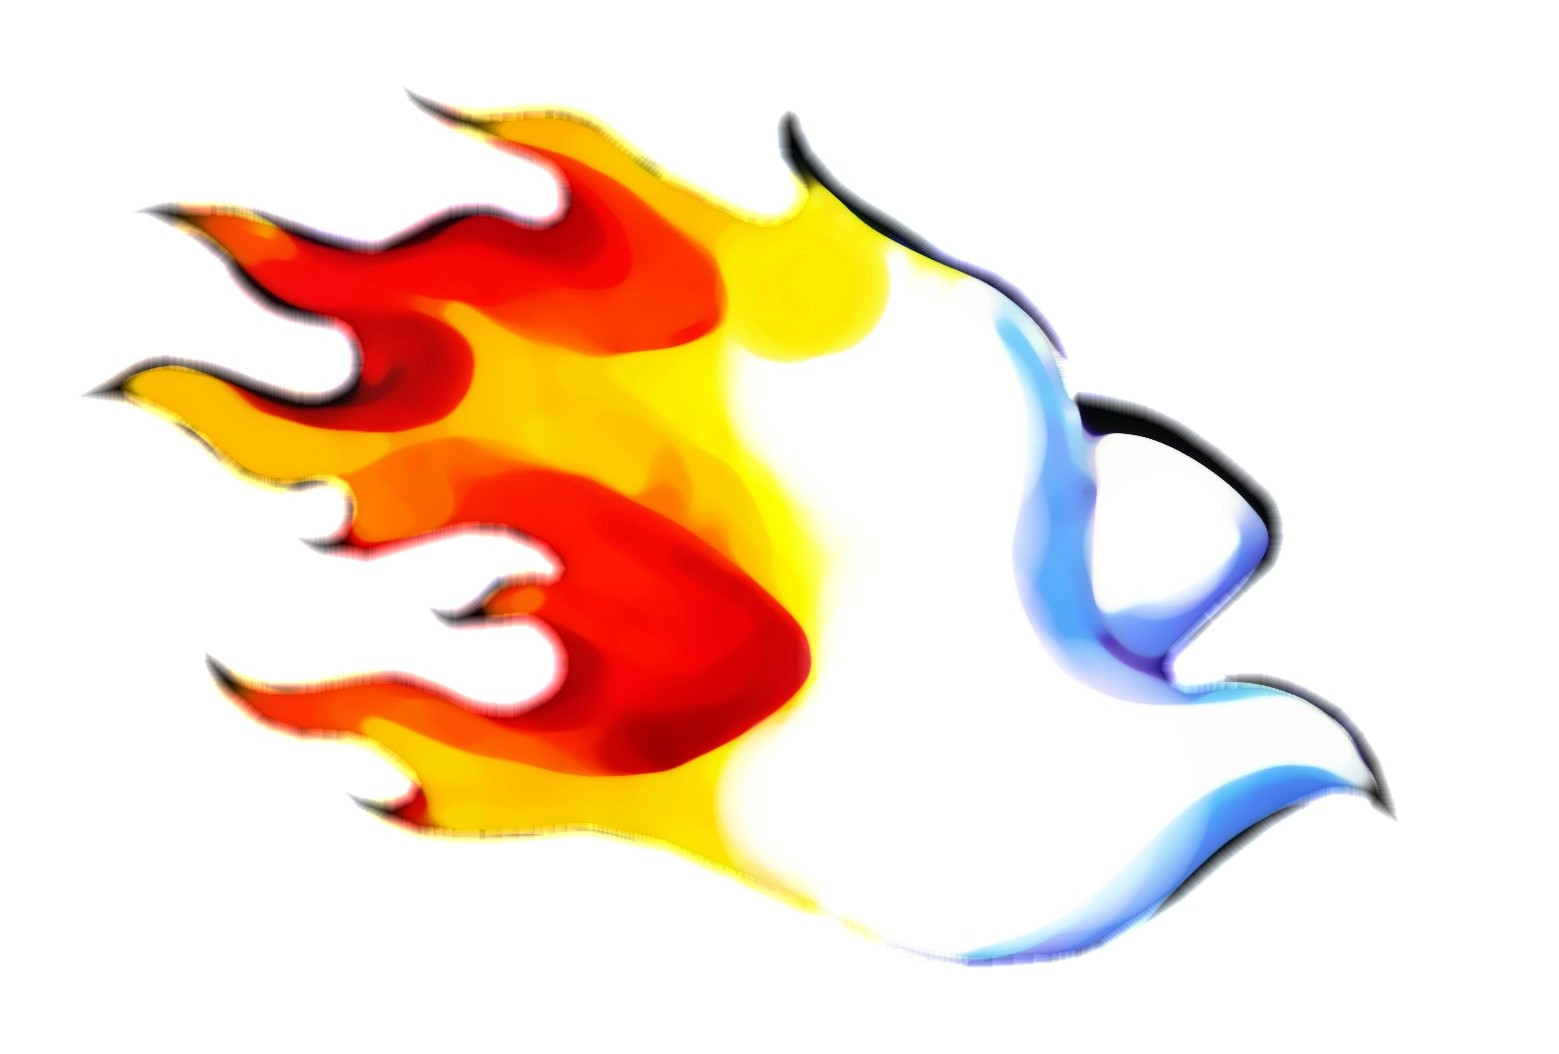 1559x1054 Fire Flame Clip Art Free Vector For Free Download About Free 3